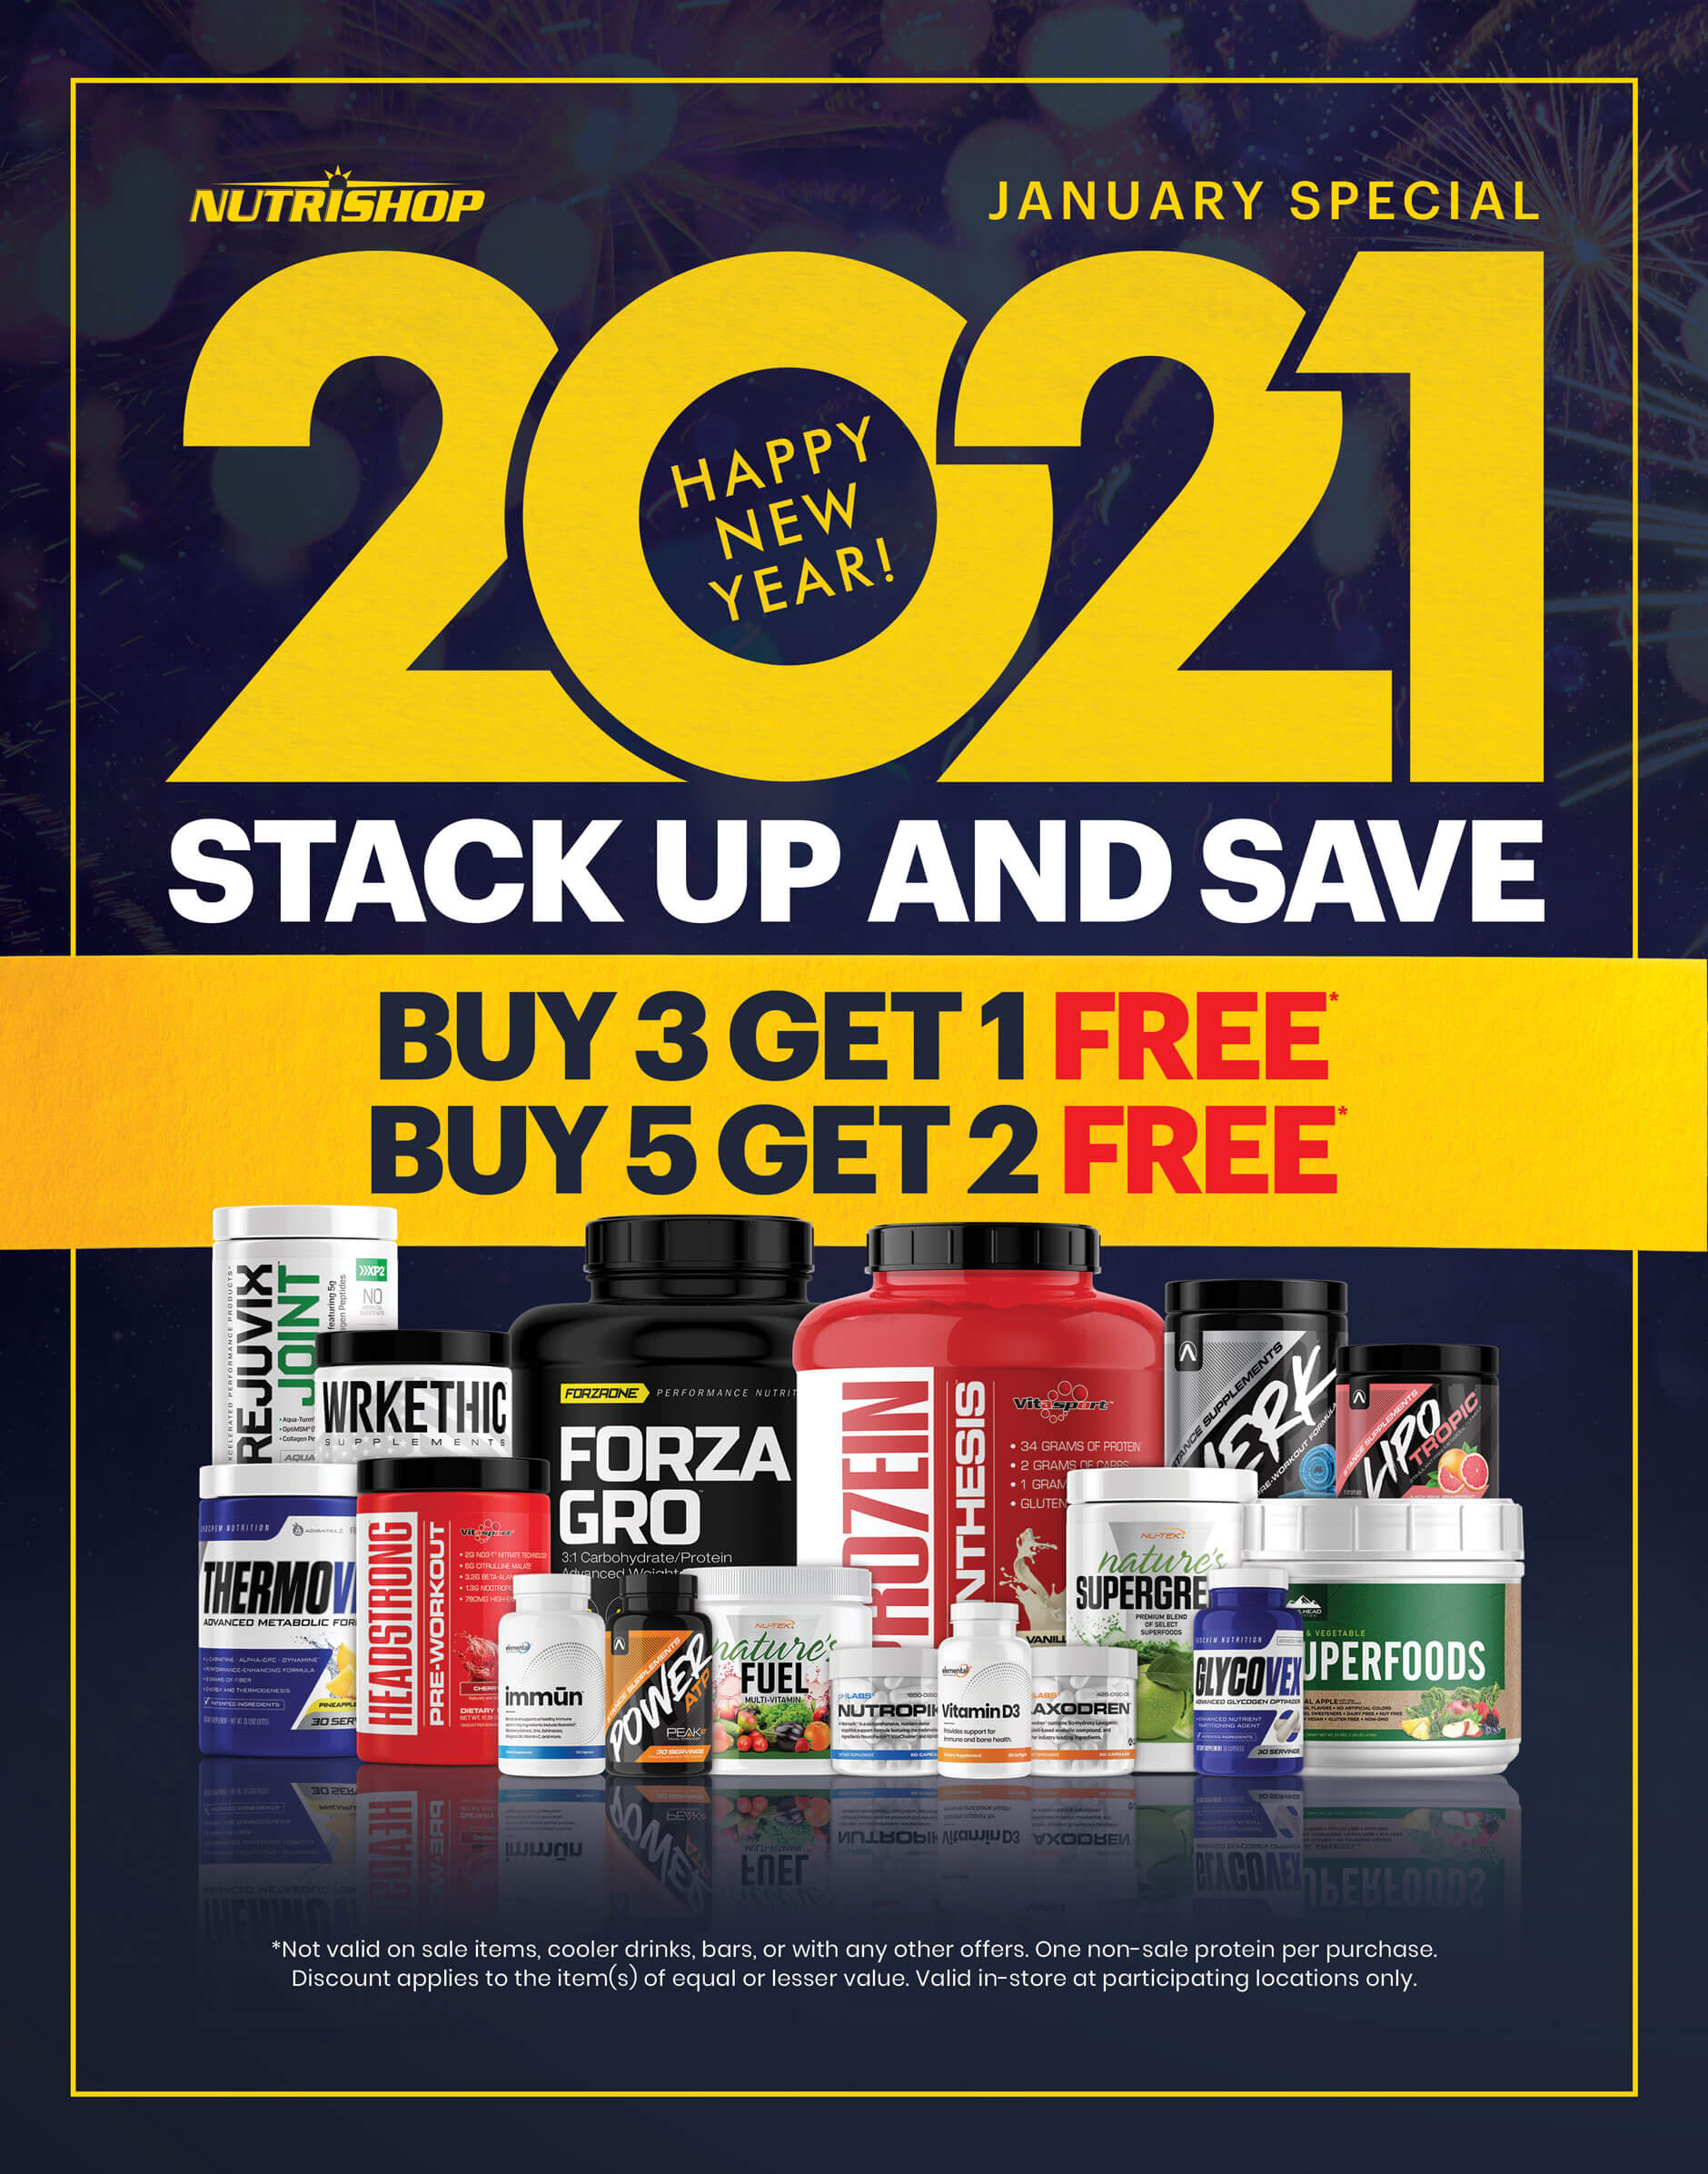 January Special   Happy New Year! 2021 Stack up and save. Buy 3 get 1 free. Buy 5 get 2 free. Not valid on sale items, cooler drinks, bars, or with any other offers, One non-sale protein per purchase. Discount applies to the item(s) of equal or lesser value. Valid in-store at participating locations only.